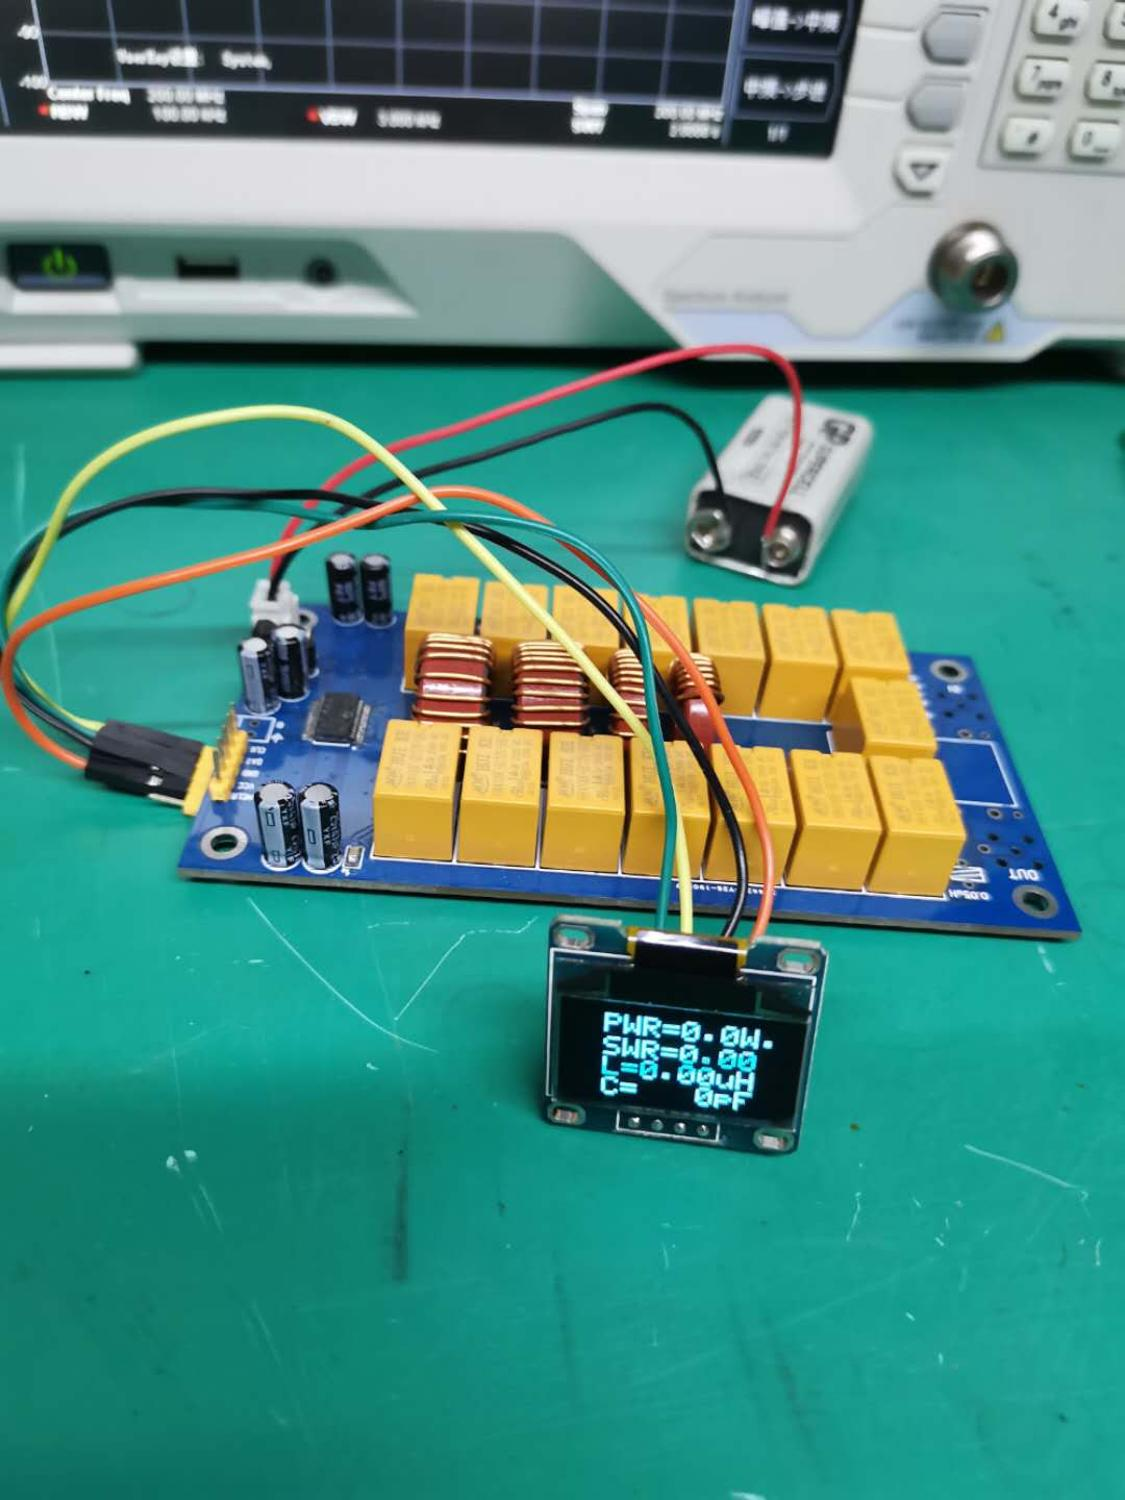 ATU-100 DIY Kits 1.8-50MHz ATU-100mini Automatic Antenna Tuner by N7DDC 7x7 + OLED, Firmware  programmed/ SMD/Chip soldered